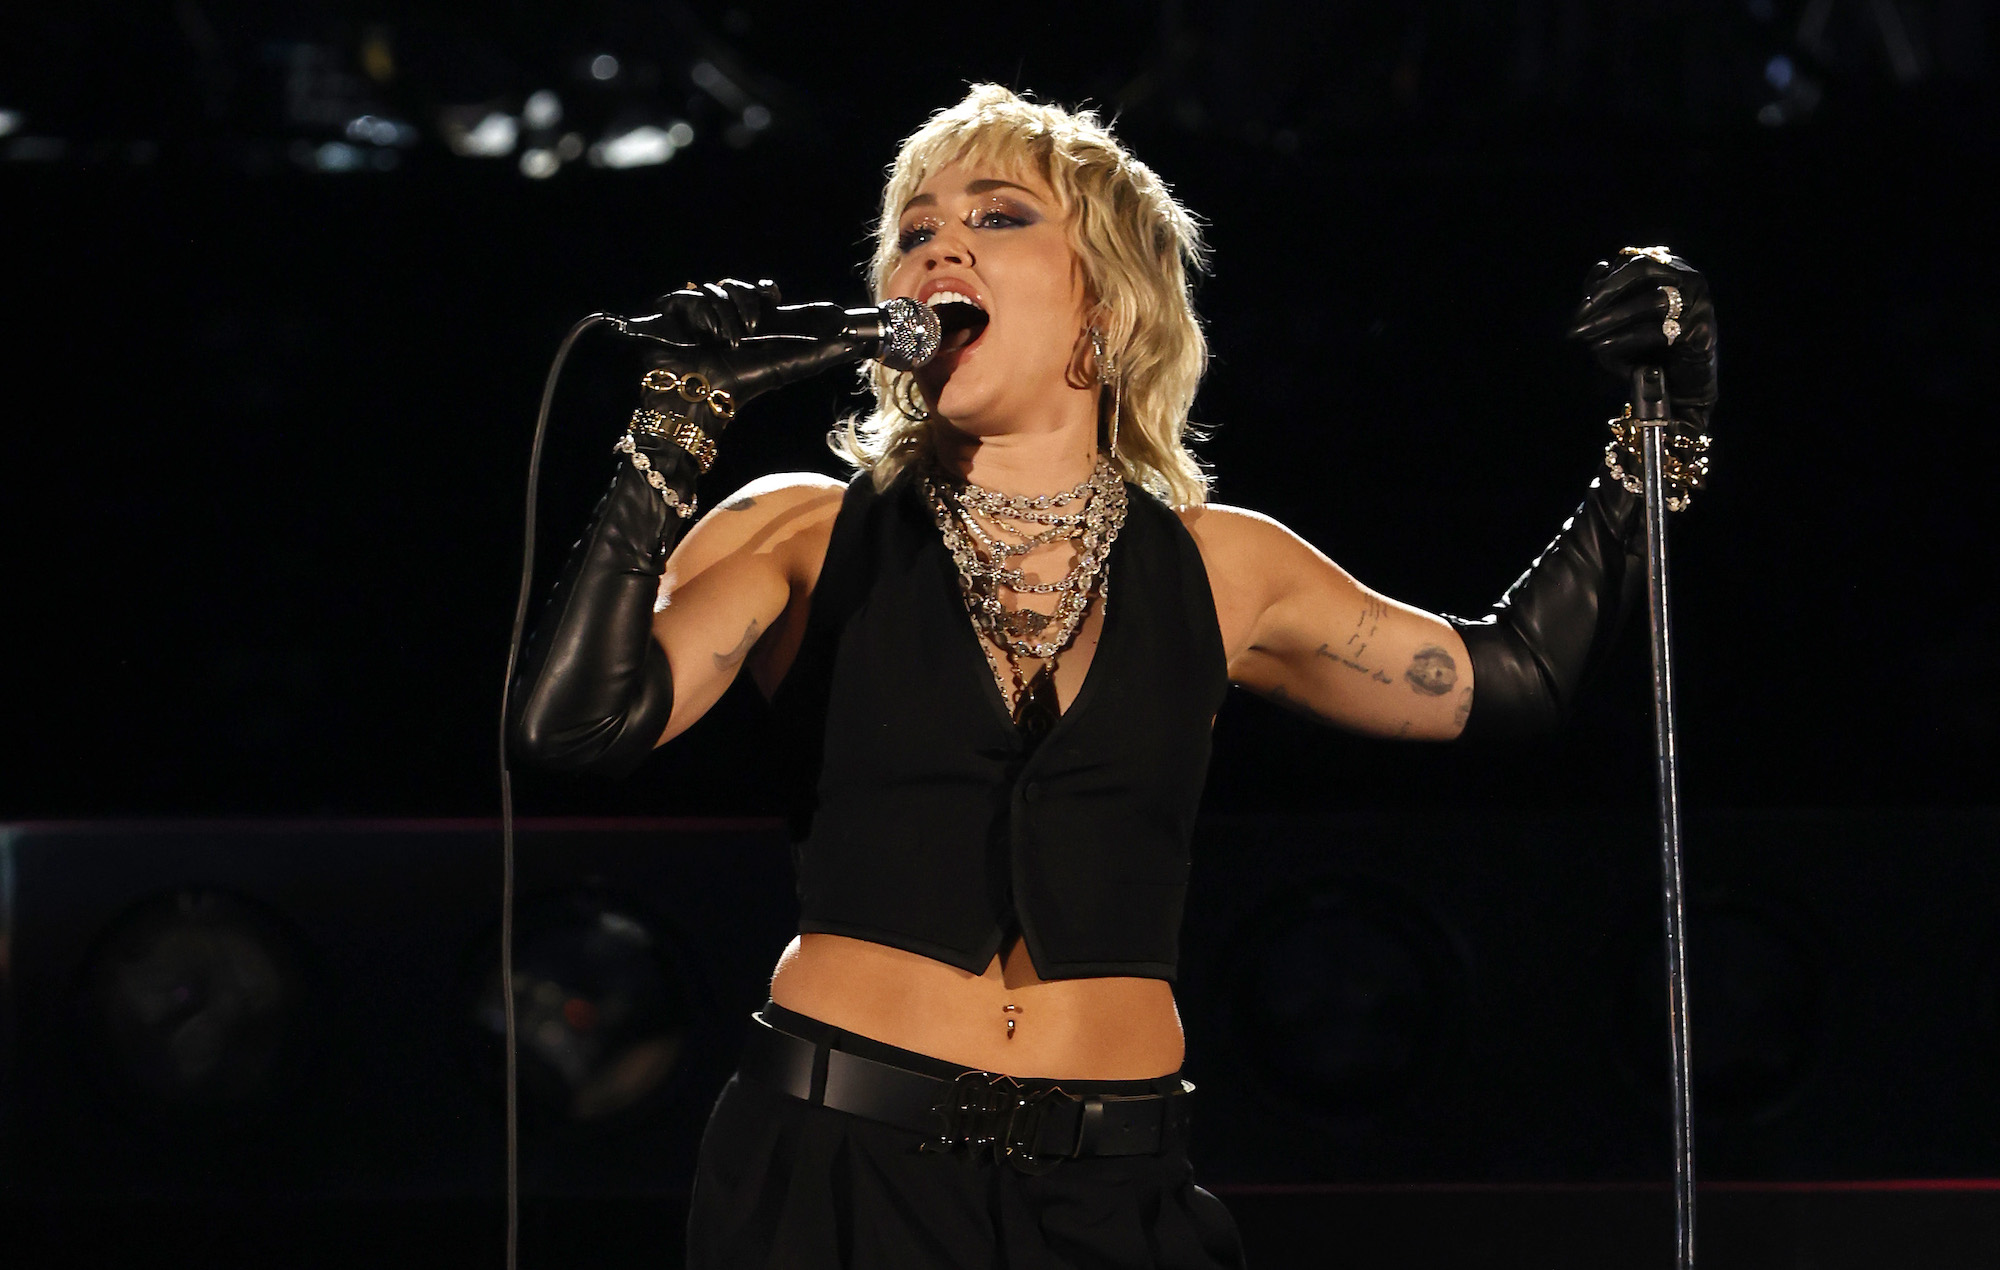 Watch Miley Cyrus cover Queen classics at 'Final Four' basketball tournament